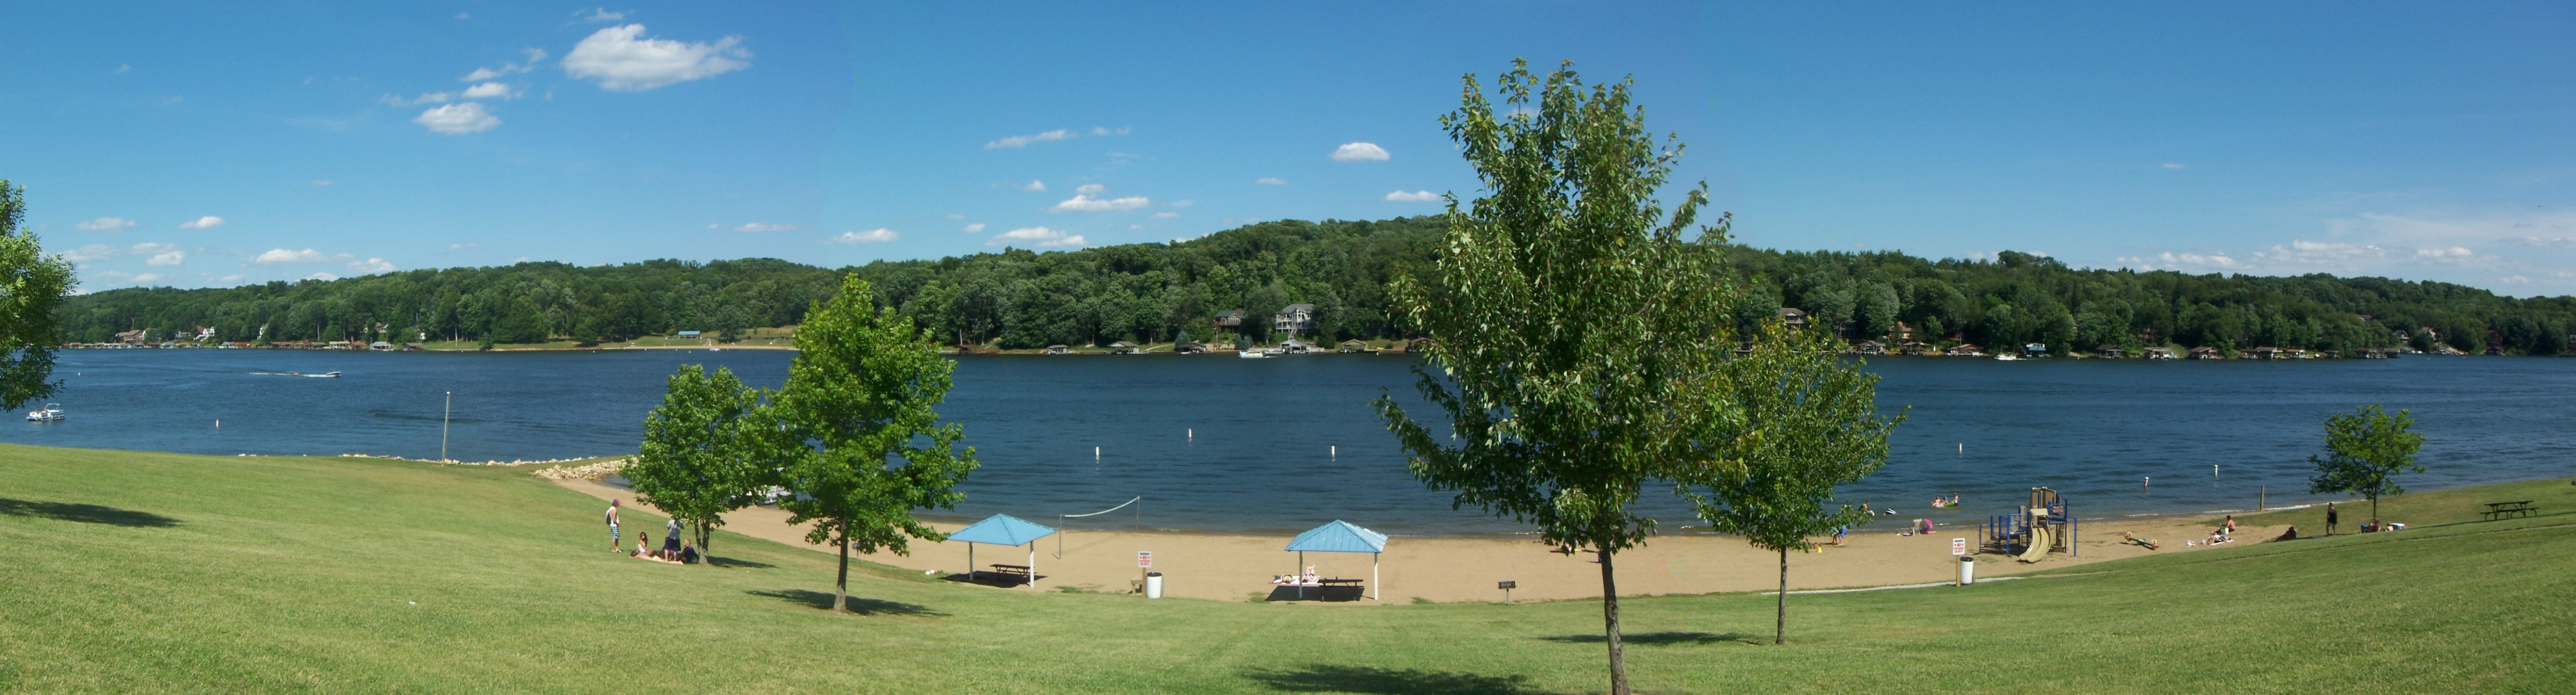 Apple Valley Lake Beach Photo by Sam Miller